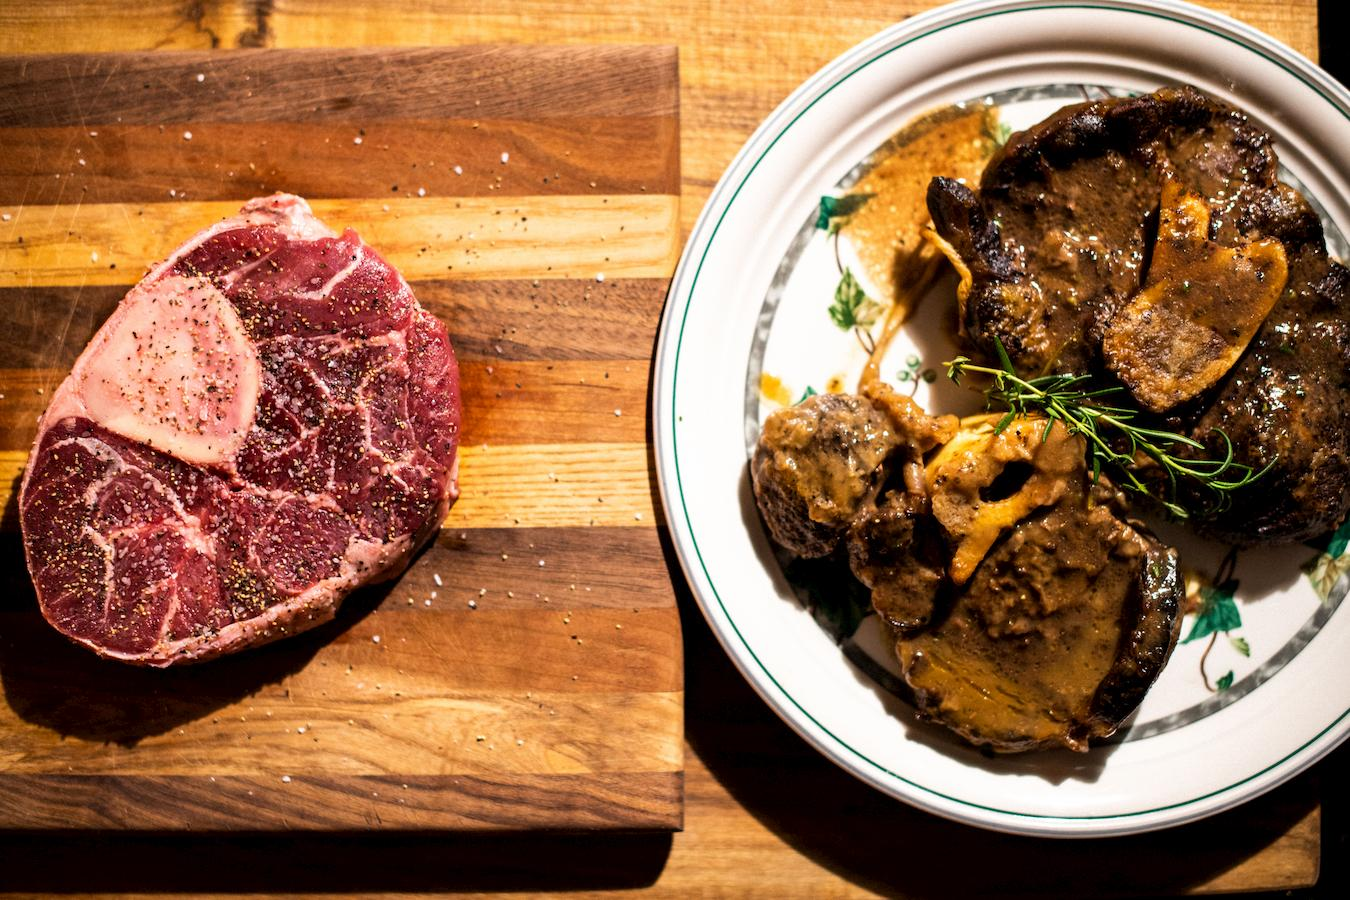 Before and after cuts of beef shank are made into Osso Bucco